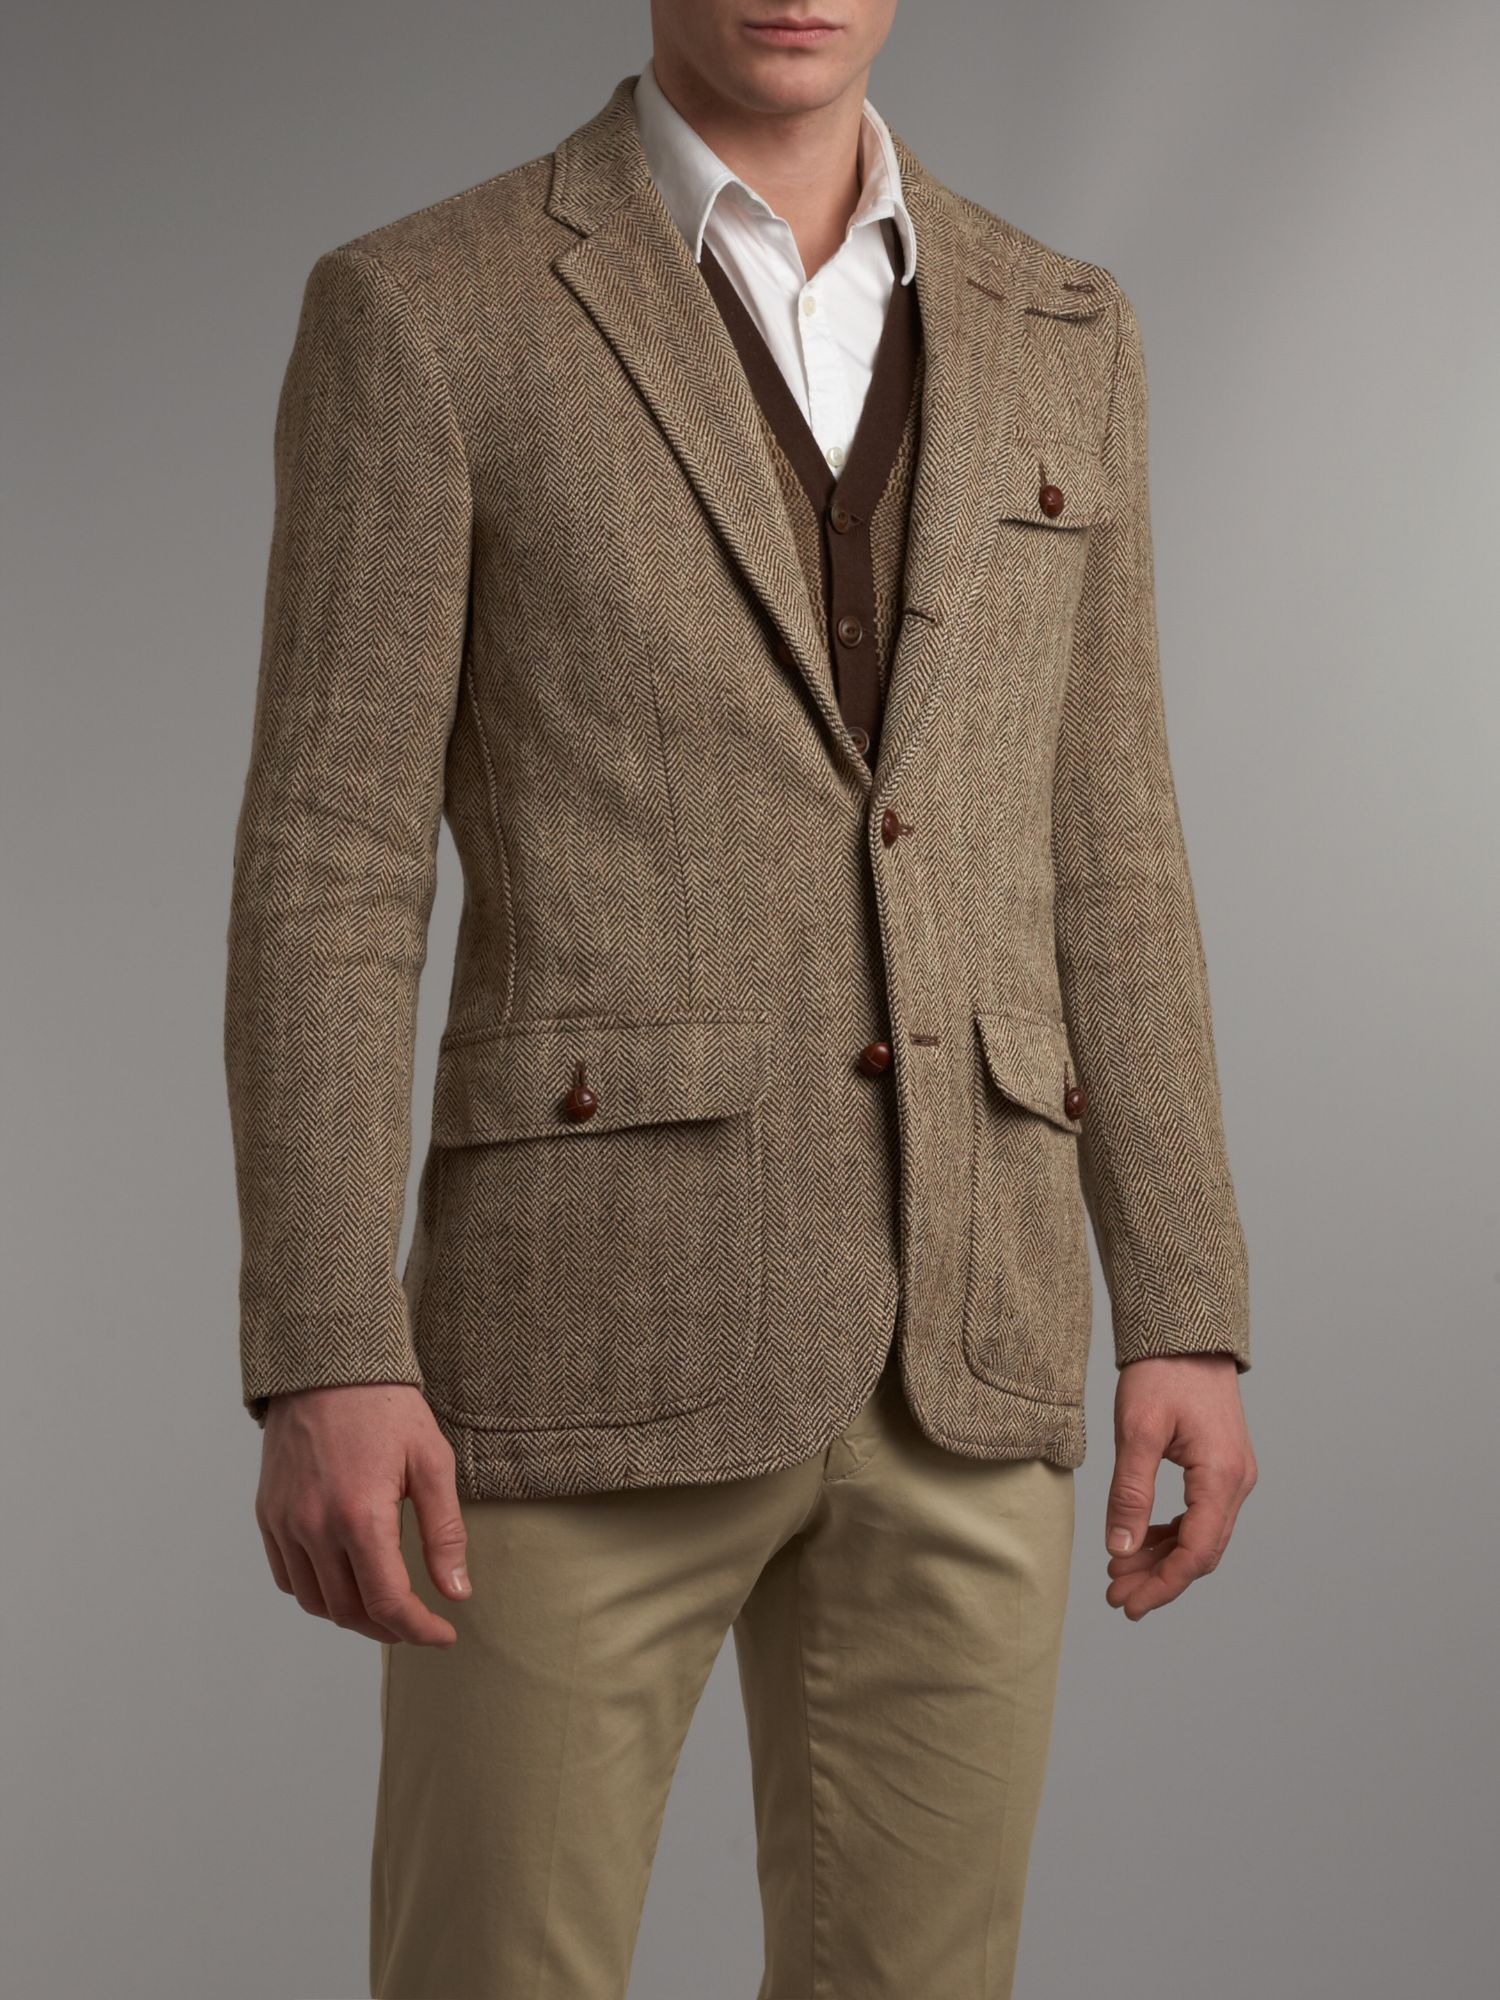 Polo ralph lauren Tweed Blazer in Brown for Men | Lyst